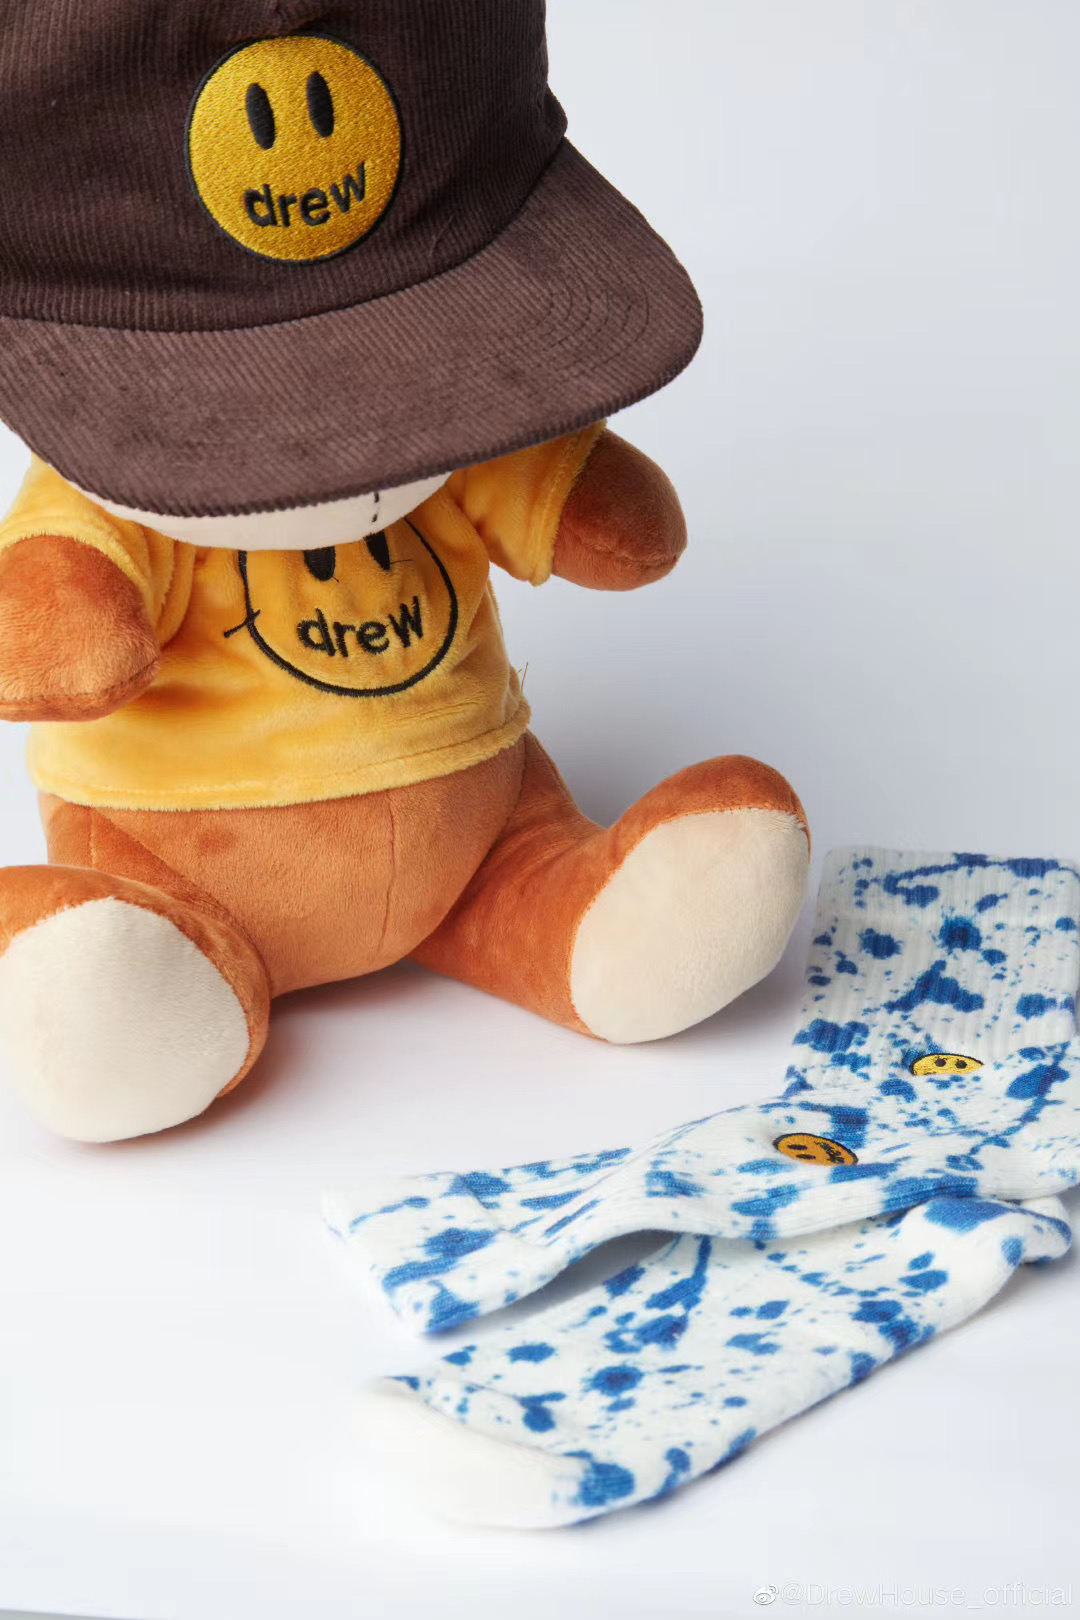 2020 Best Quality 1:1 Justin Bieber Drew House Brown Teddy Plush Hats Men Women Smiley Face Embroidery Drew Teddy